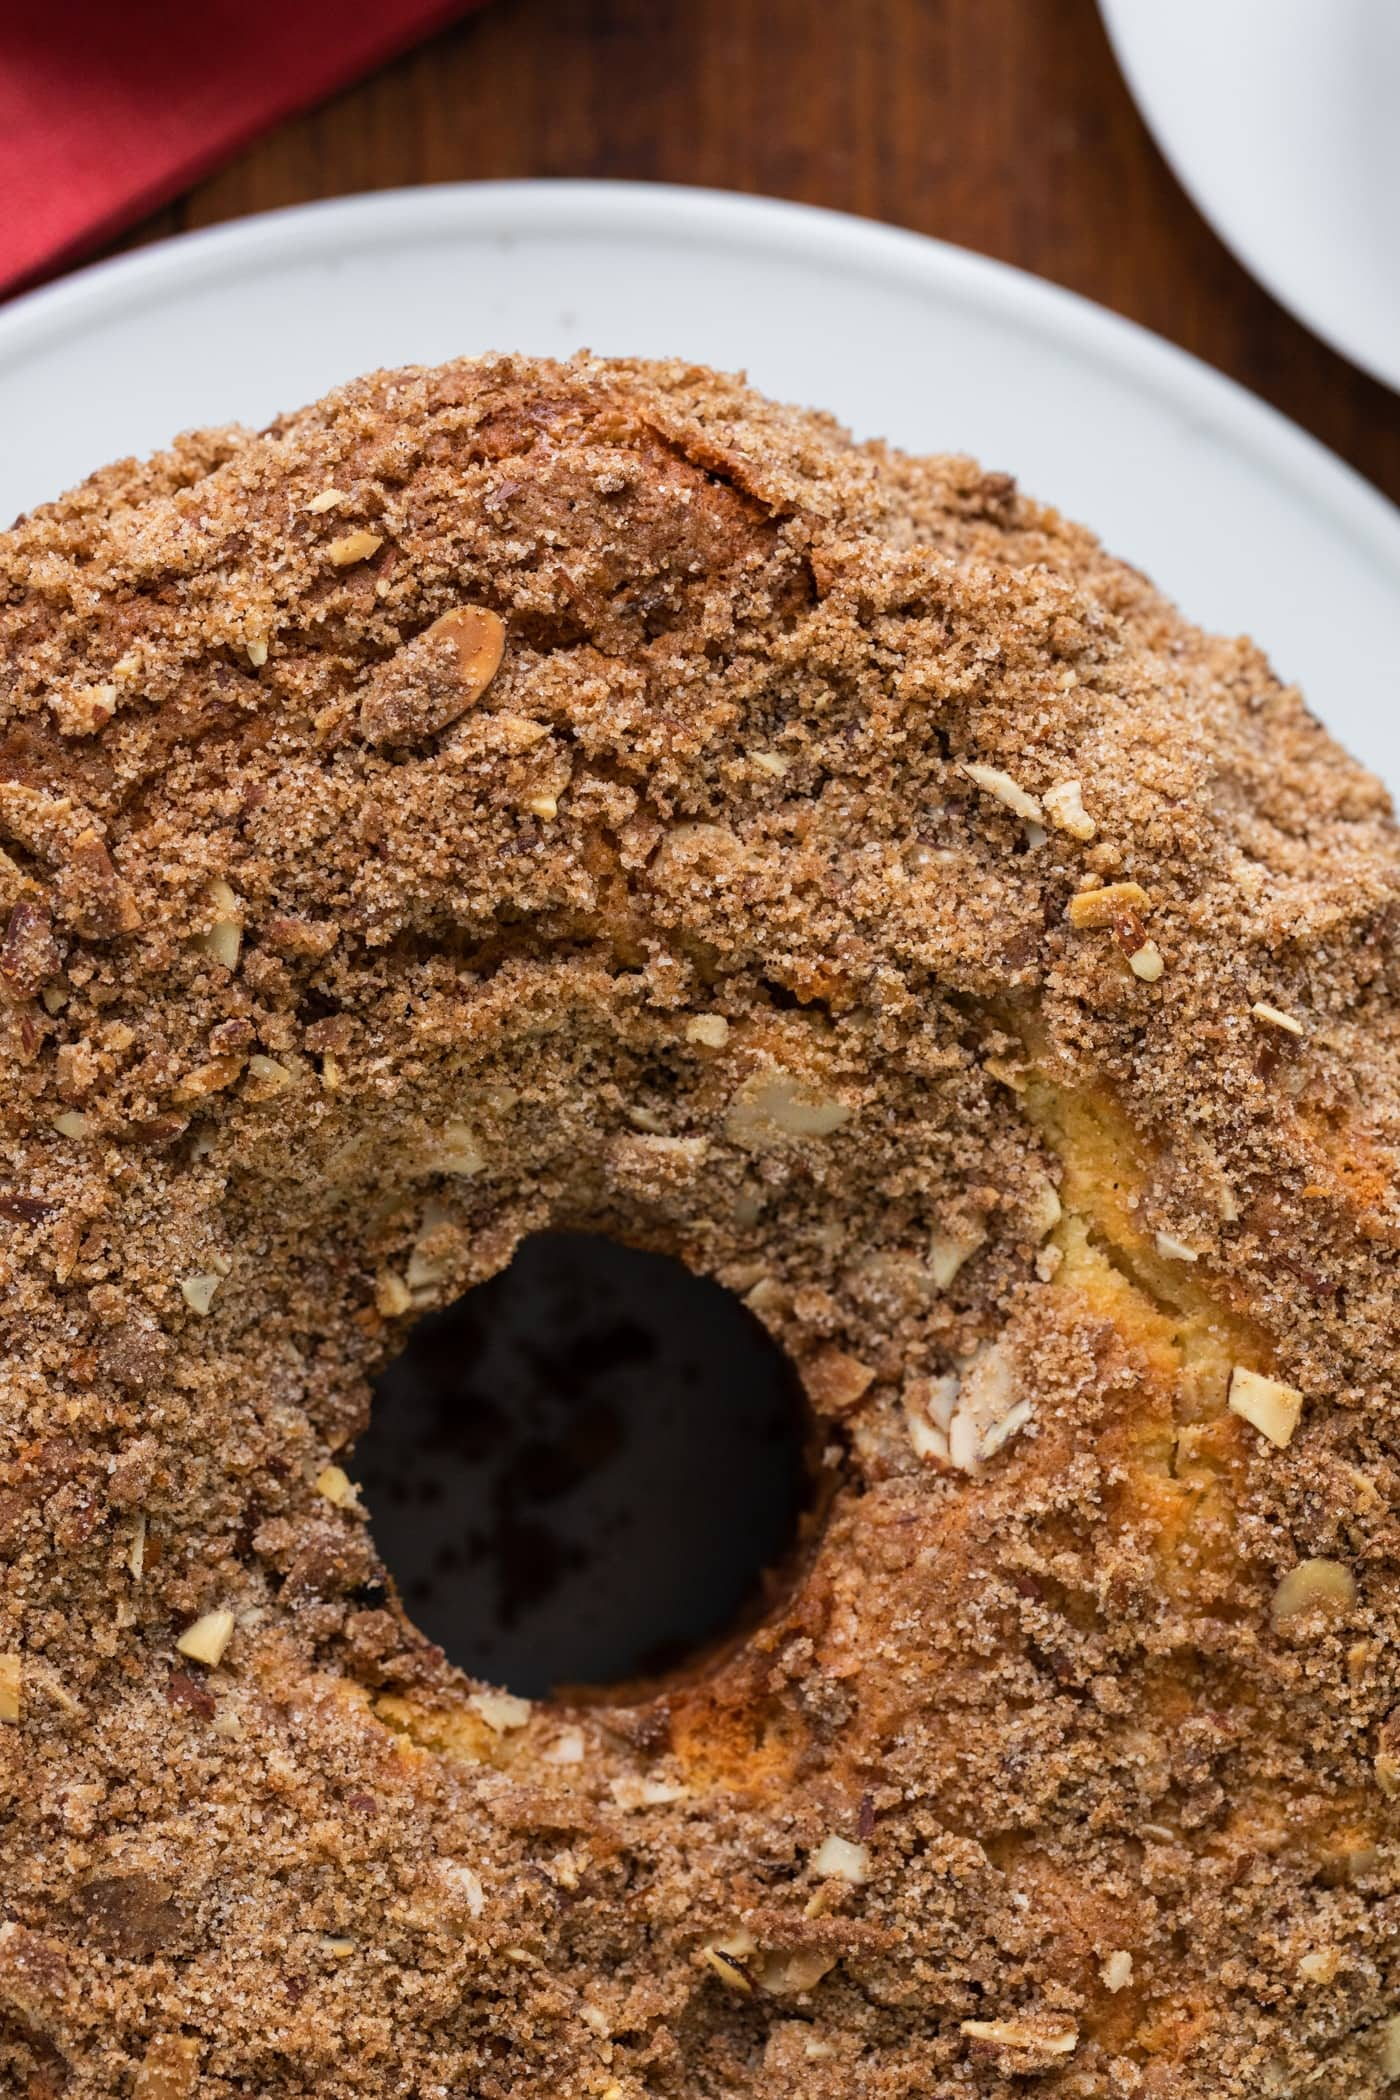 Top down view of streusel topping on top of a coffee cake with hole down the center with red napkin in background